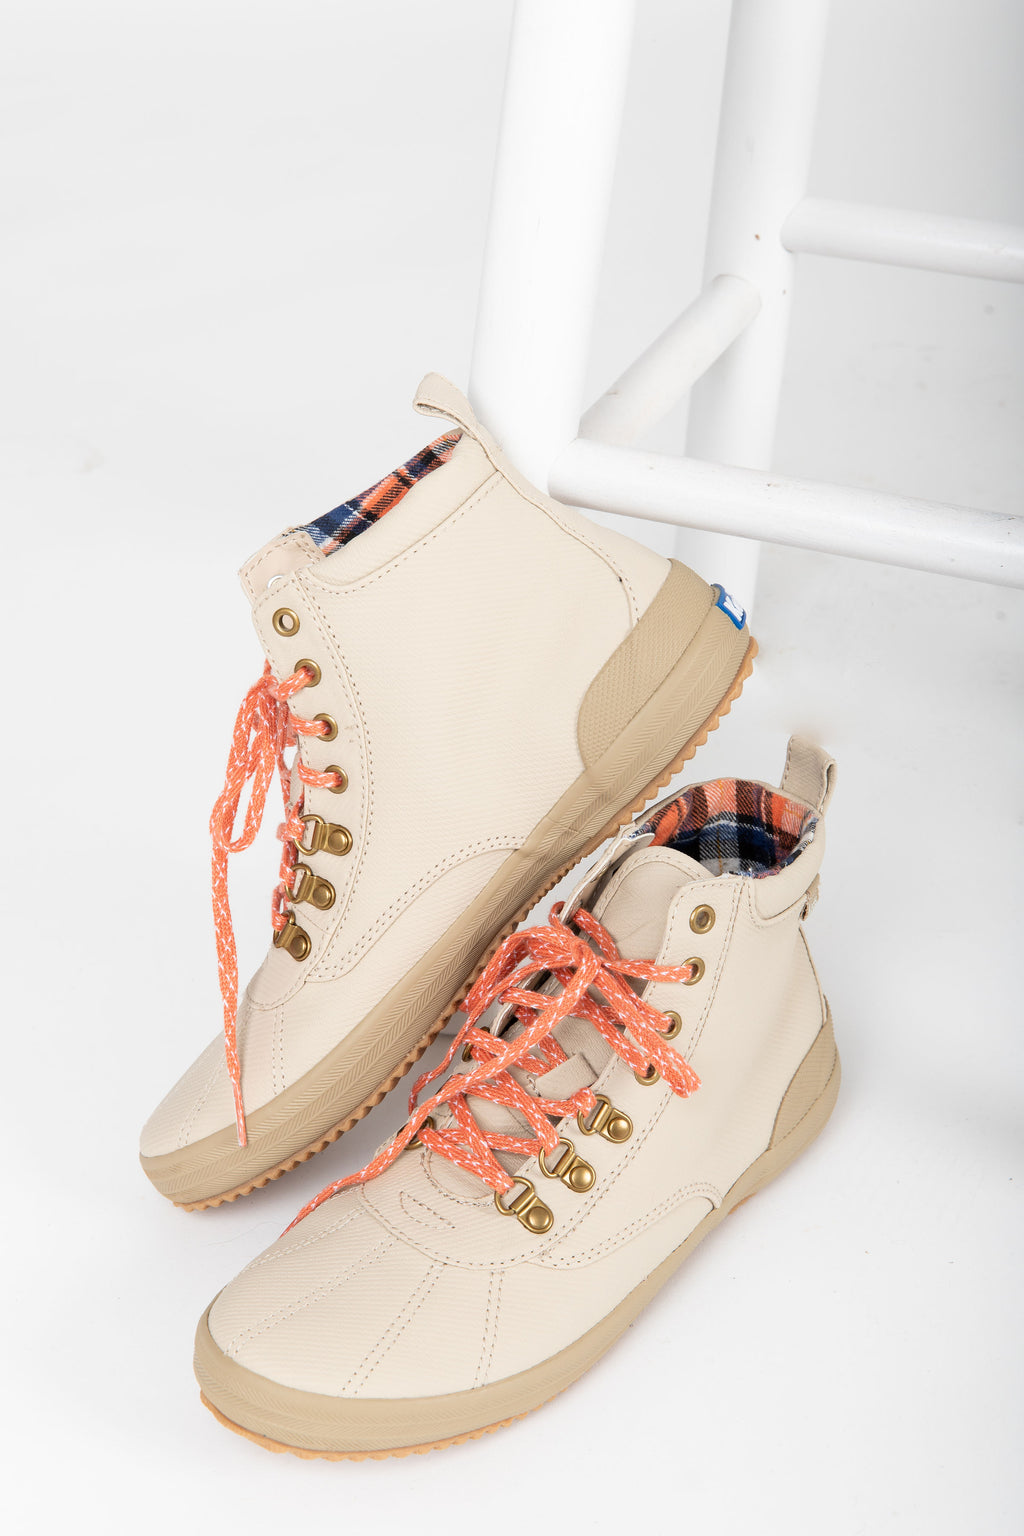 Keds: Scout II Matte Twill Water-Resistant Boot in Taupe